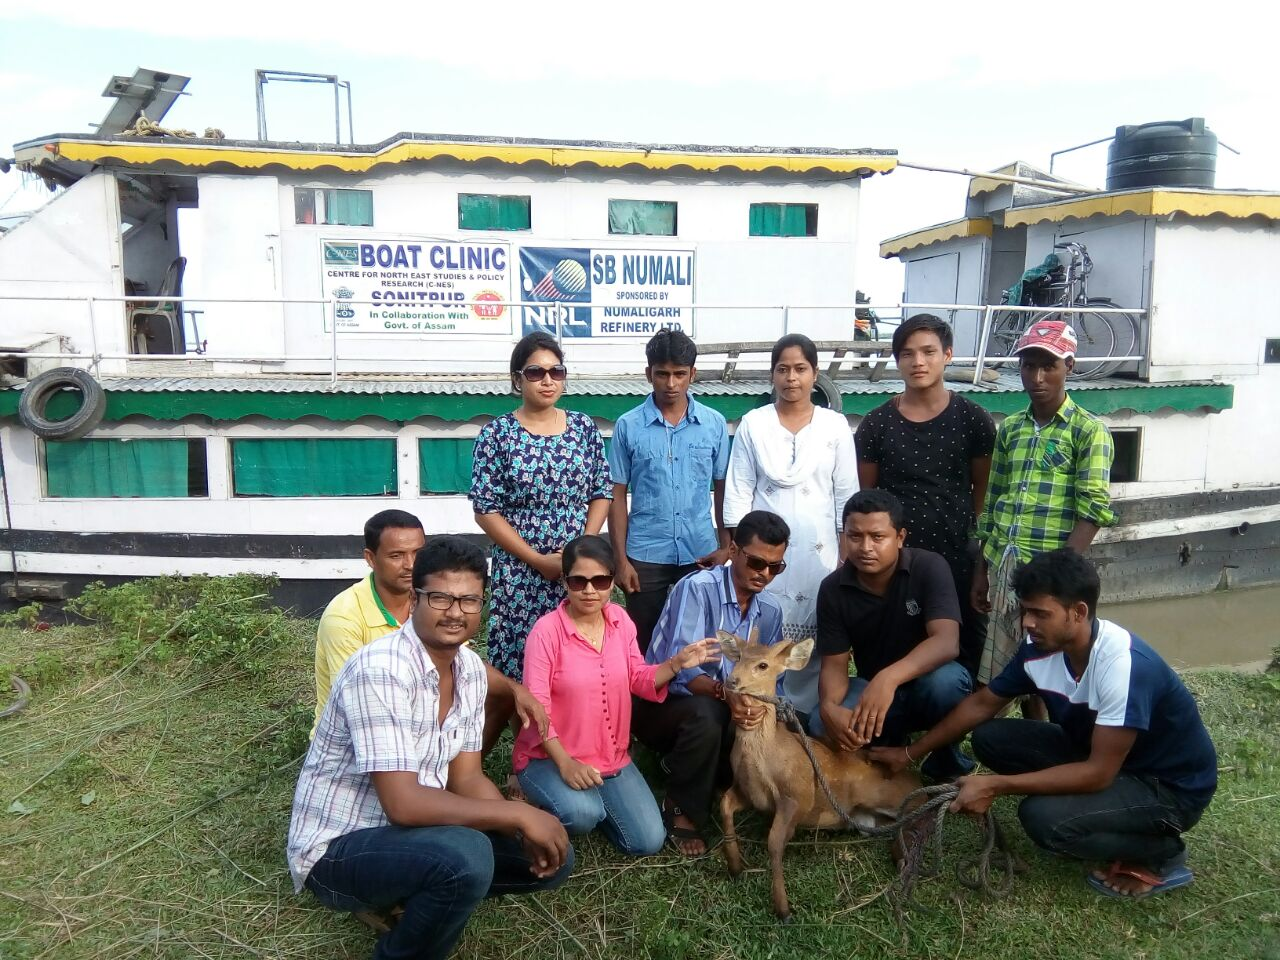 The Sonitpur Boat Clinic team rescued a deer from the sweeping flood waters in July 2016. It was subsequently handed over to the Department of Forest. The work of the Boat Clinics go beyond just delivering basic health care.